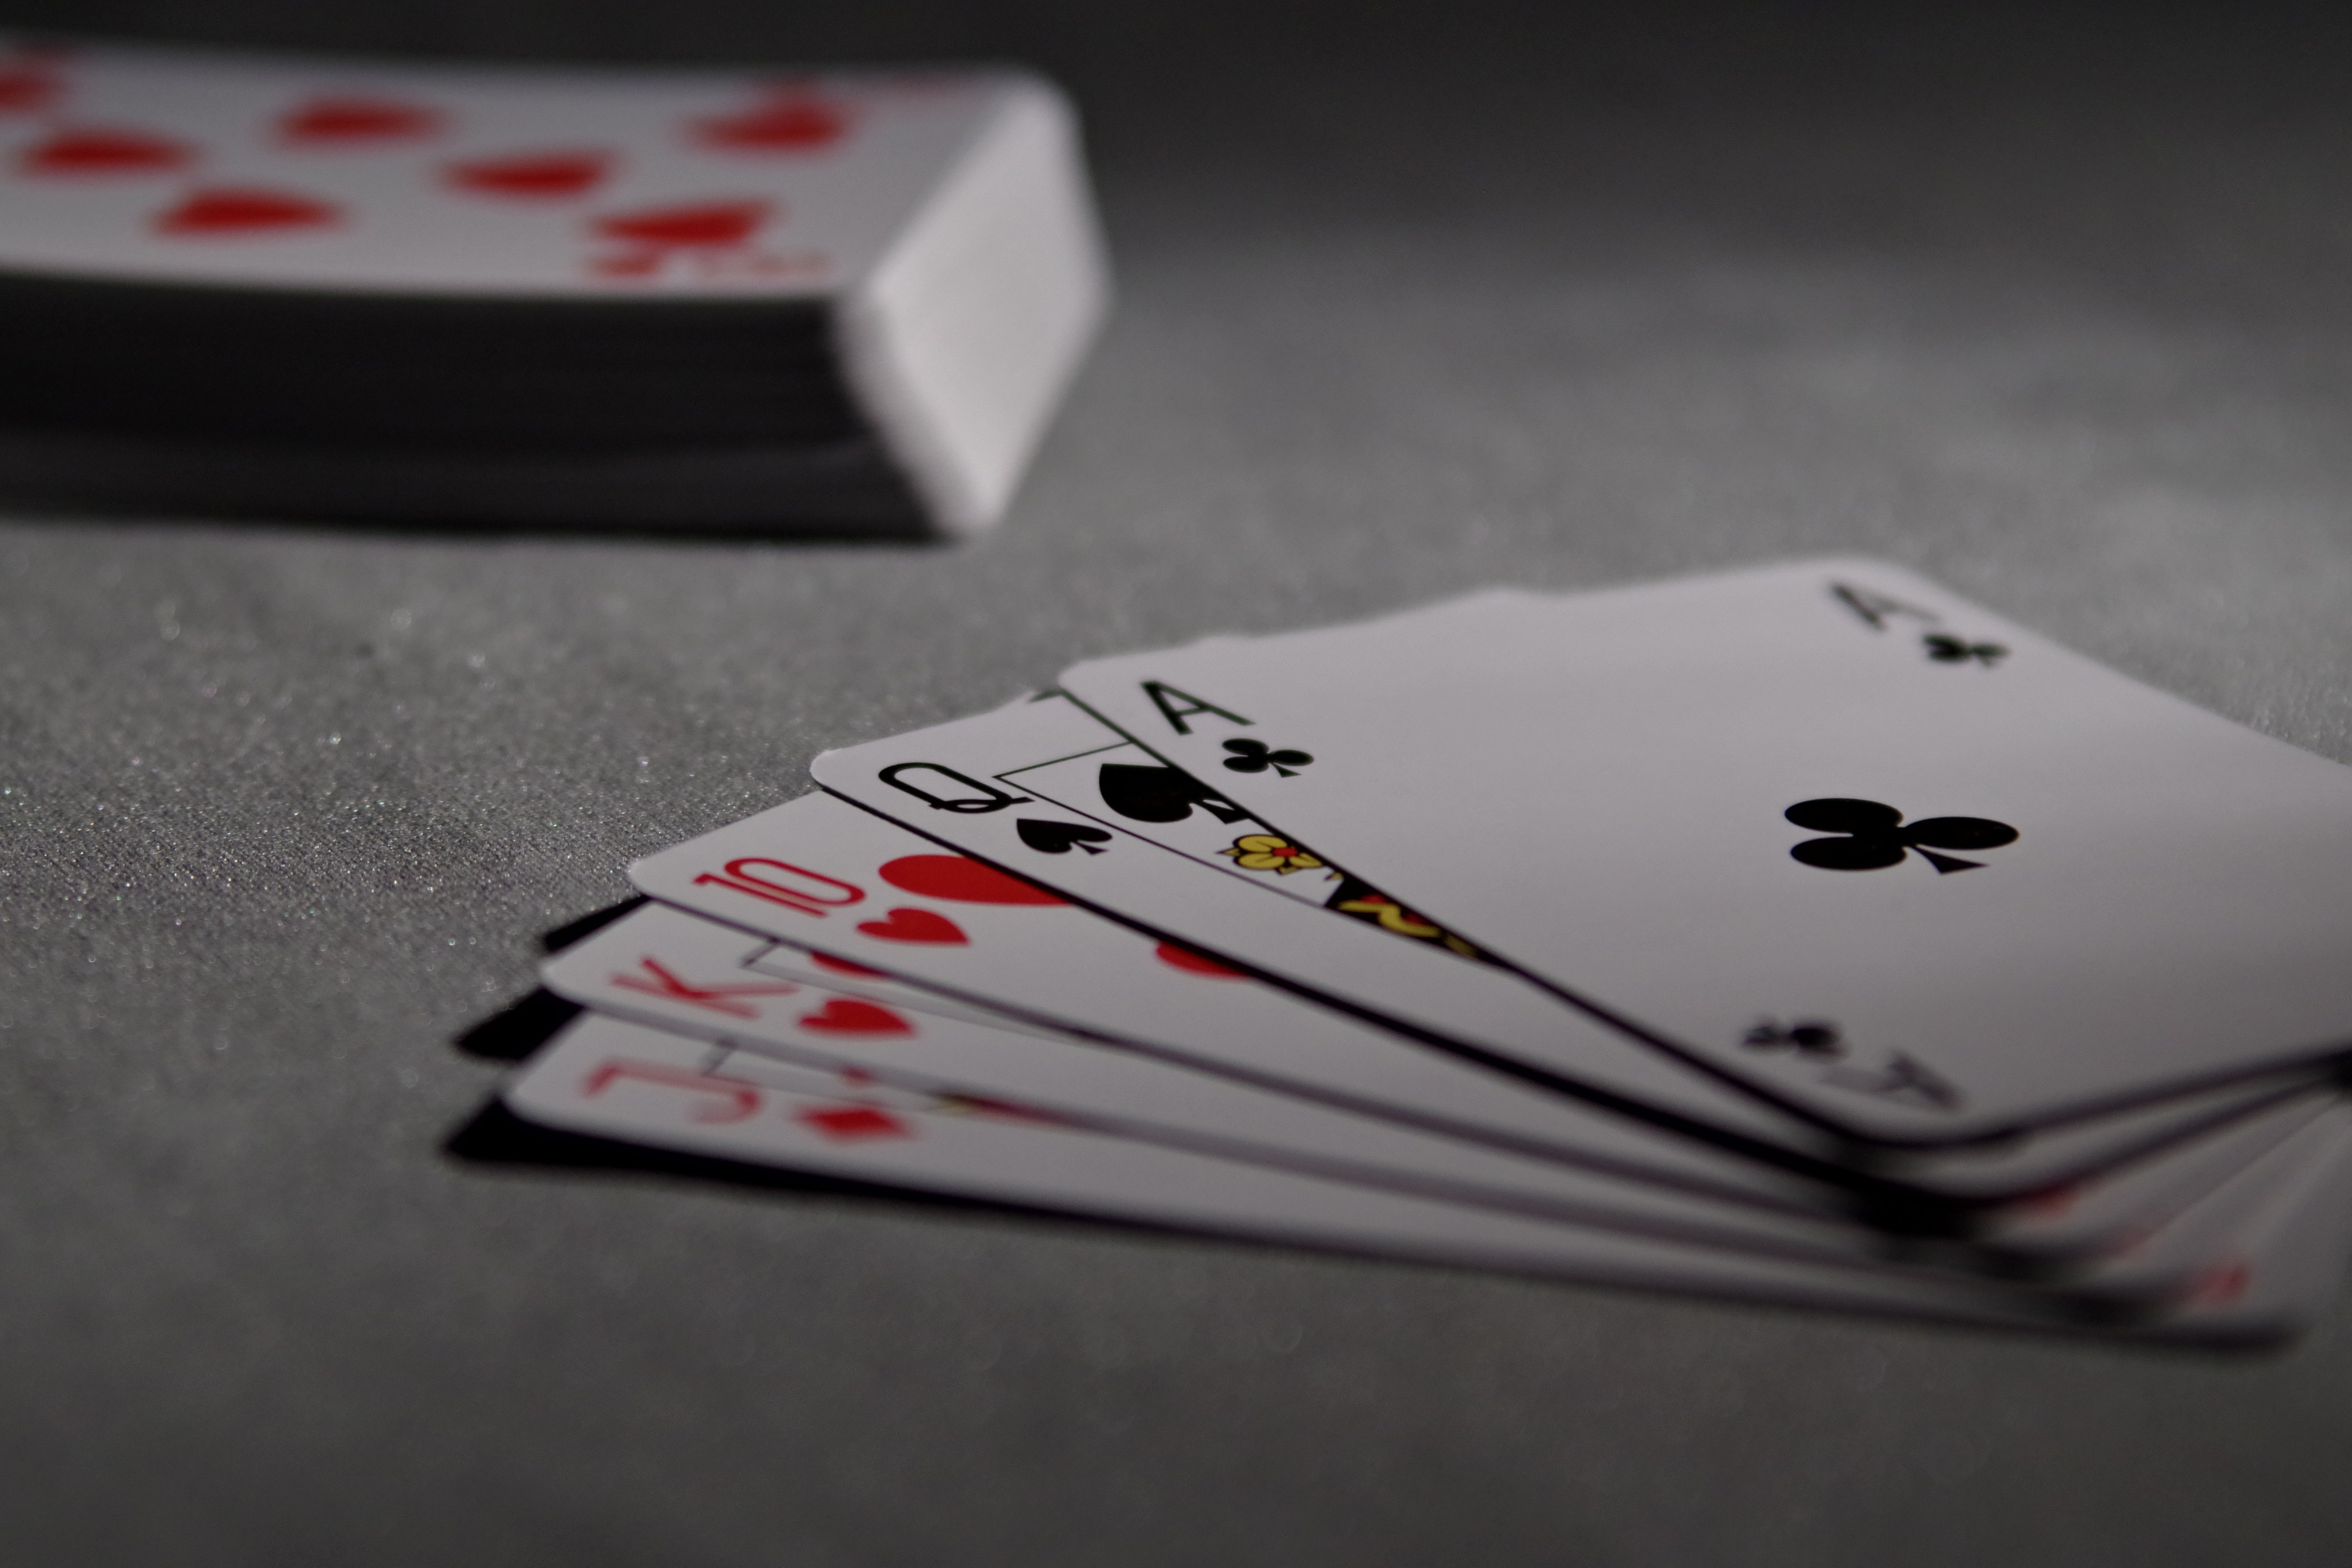 Picture of gambling cards.